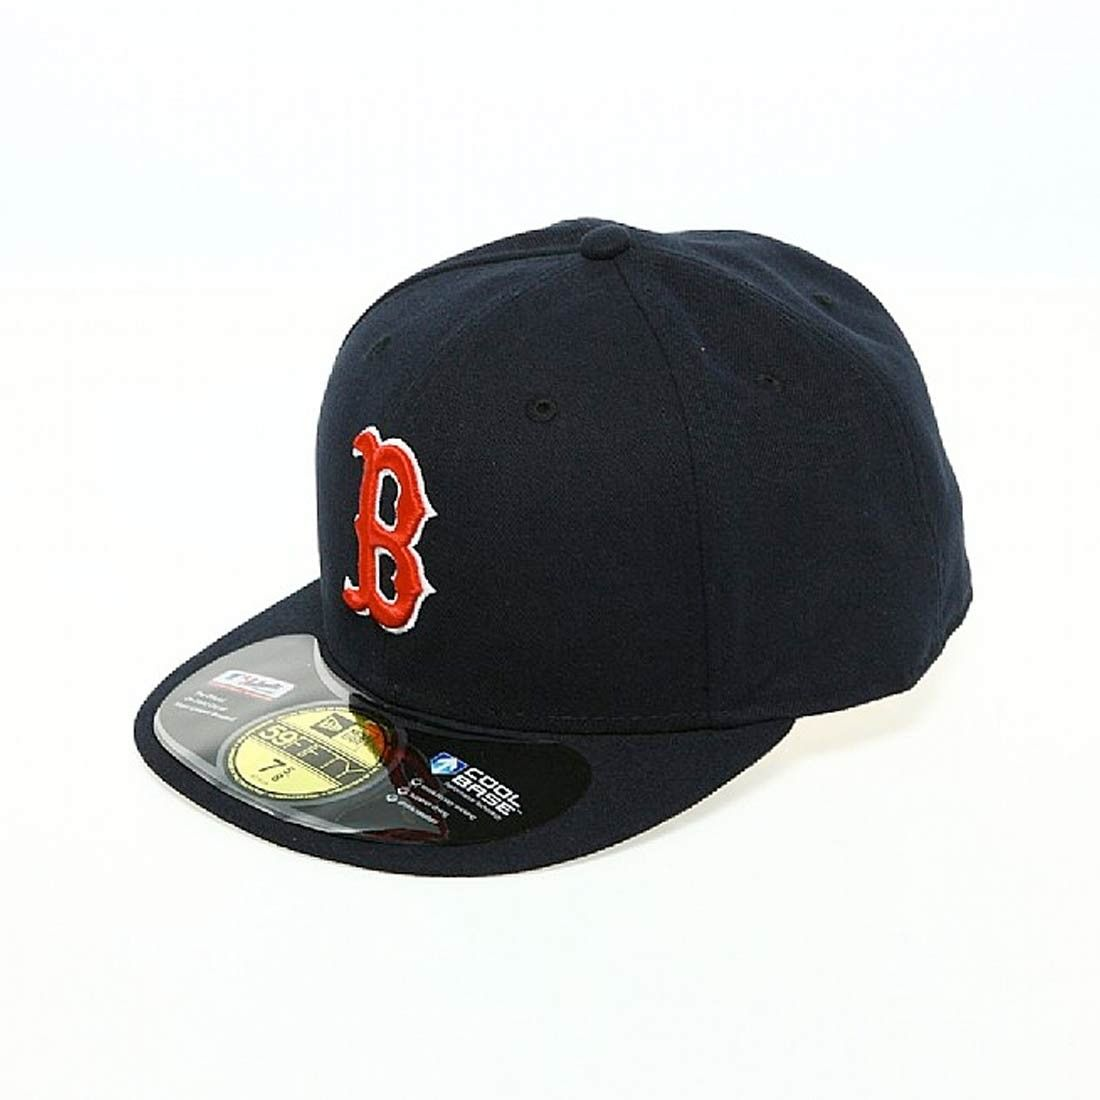 Gorra Cap New Era Authentic Boston Red Sox On Field Game 59FIFTY ... 2b8d89fa05fe